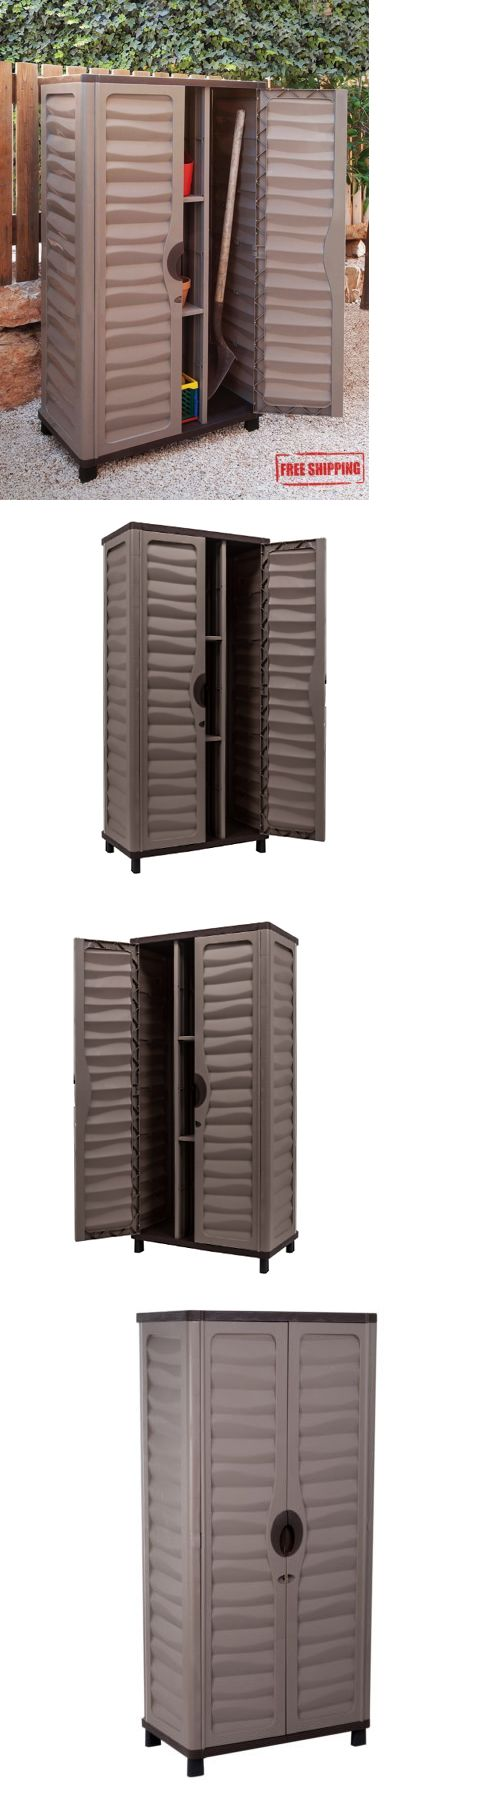 Garden and Storage Sheds 139956: Outdoor Storage Cabinet Garden Utility Plastic Horizontal Shed Garage Lockable -> BUY IT NOW ONLY: $419.86 on eBay!